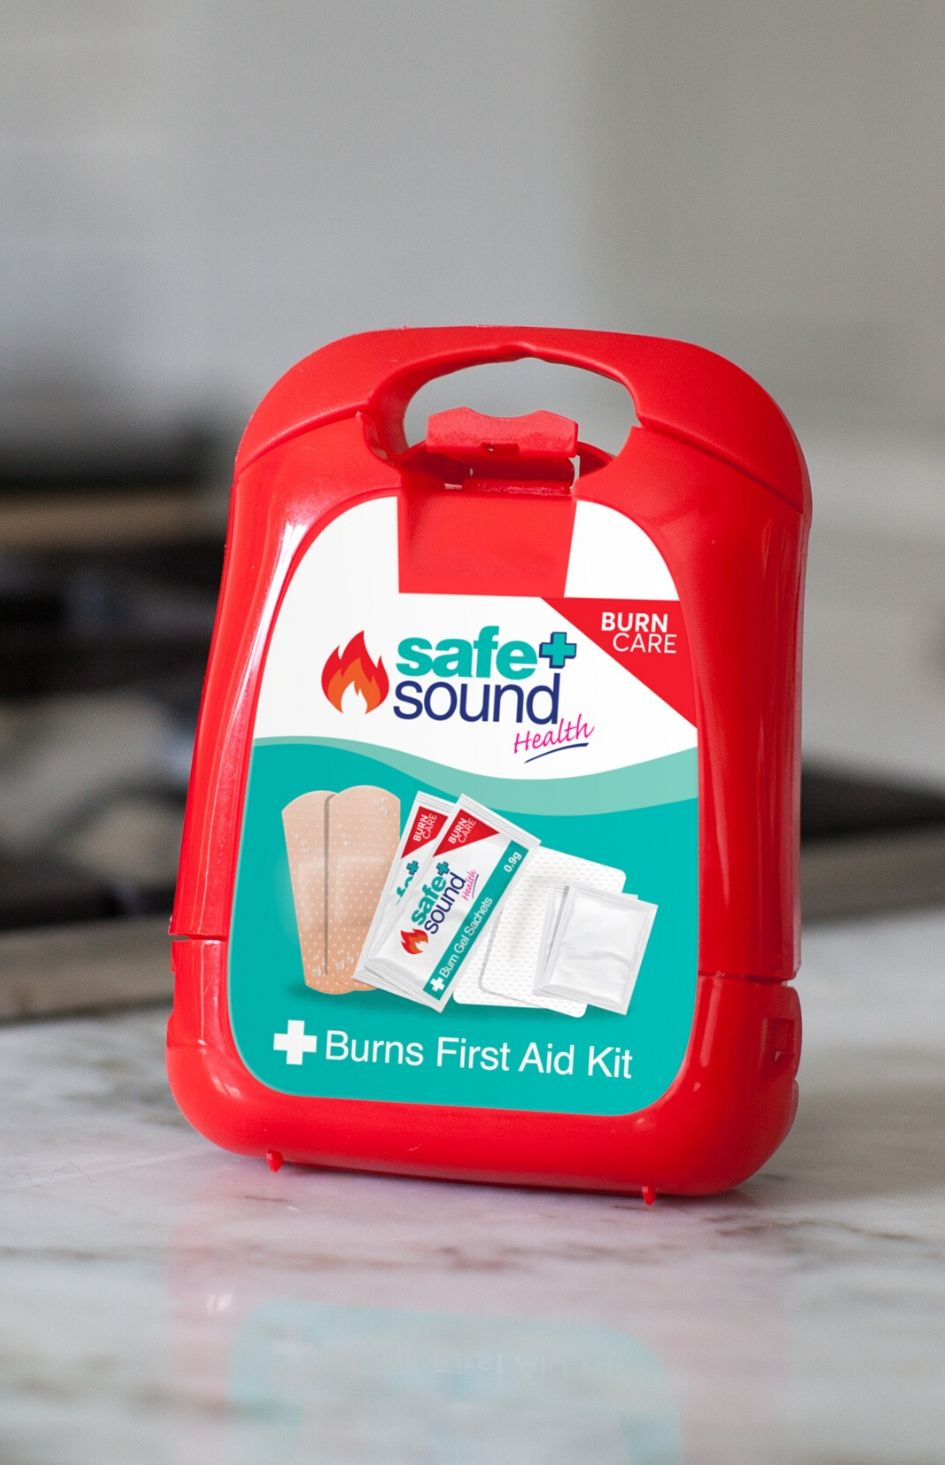 Safe and Sound Health's burn's first aid kit for the kitchen and home